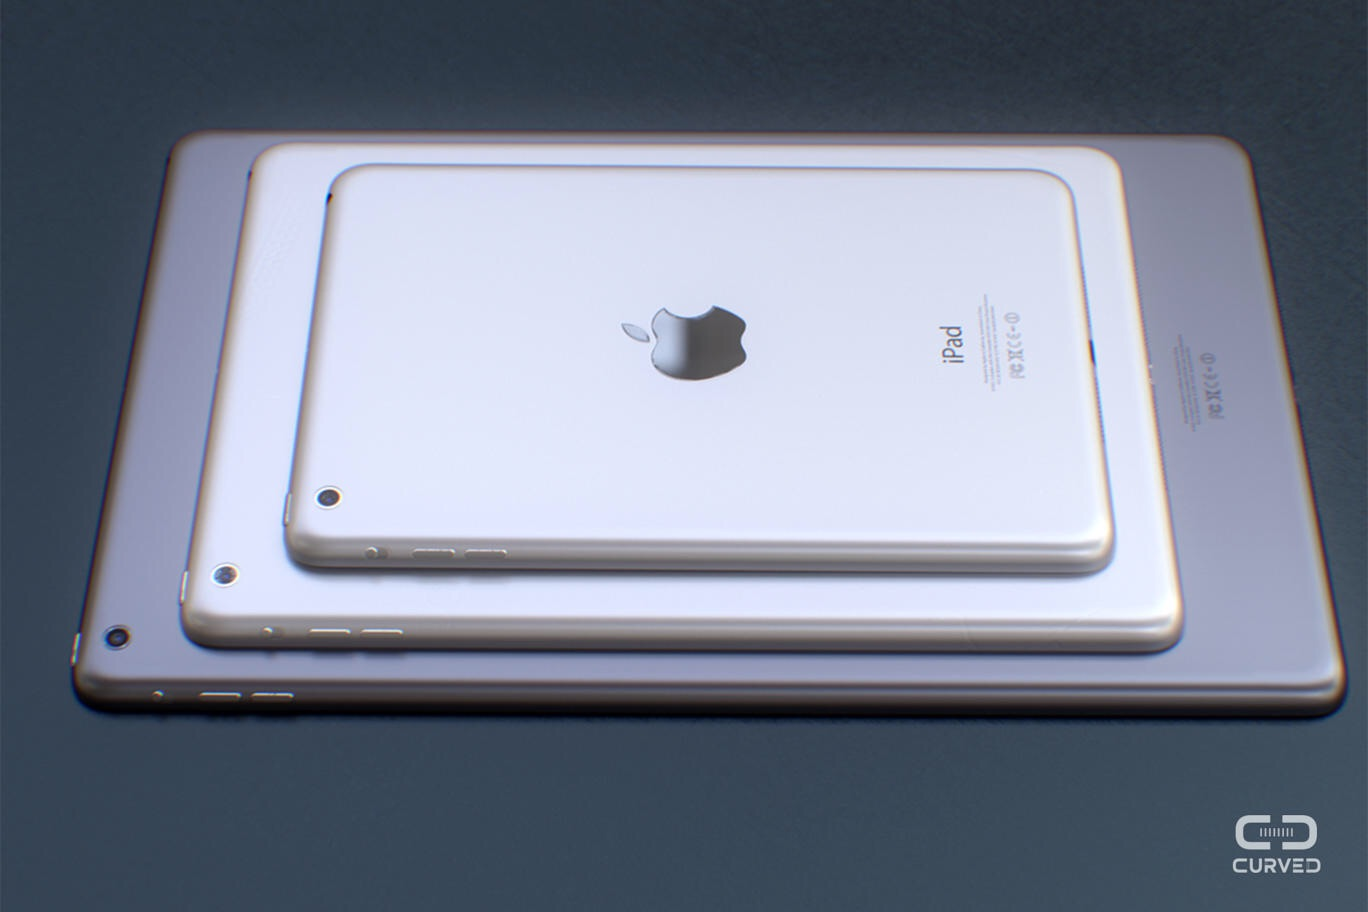 iPad Pro: Pure Unobtainium, Powered by Dreams